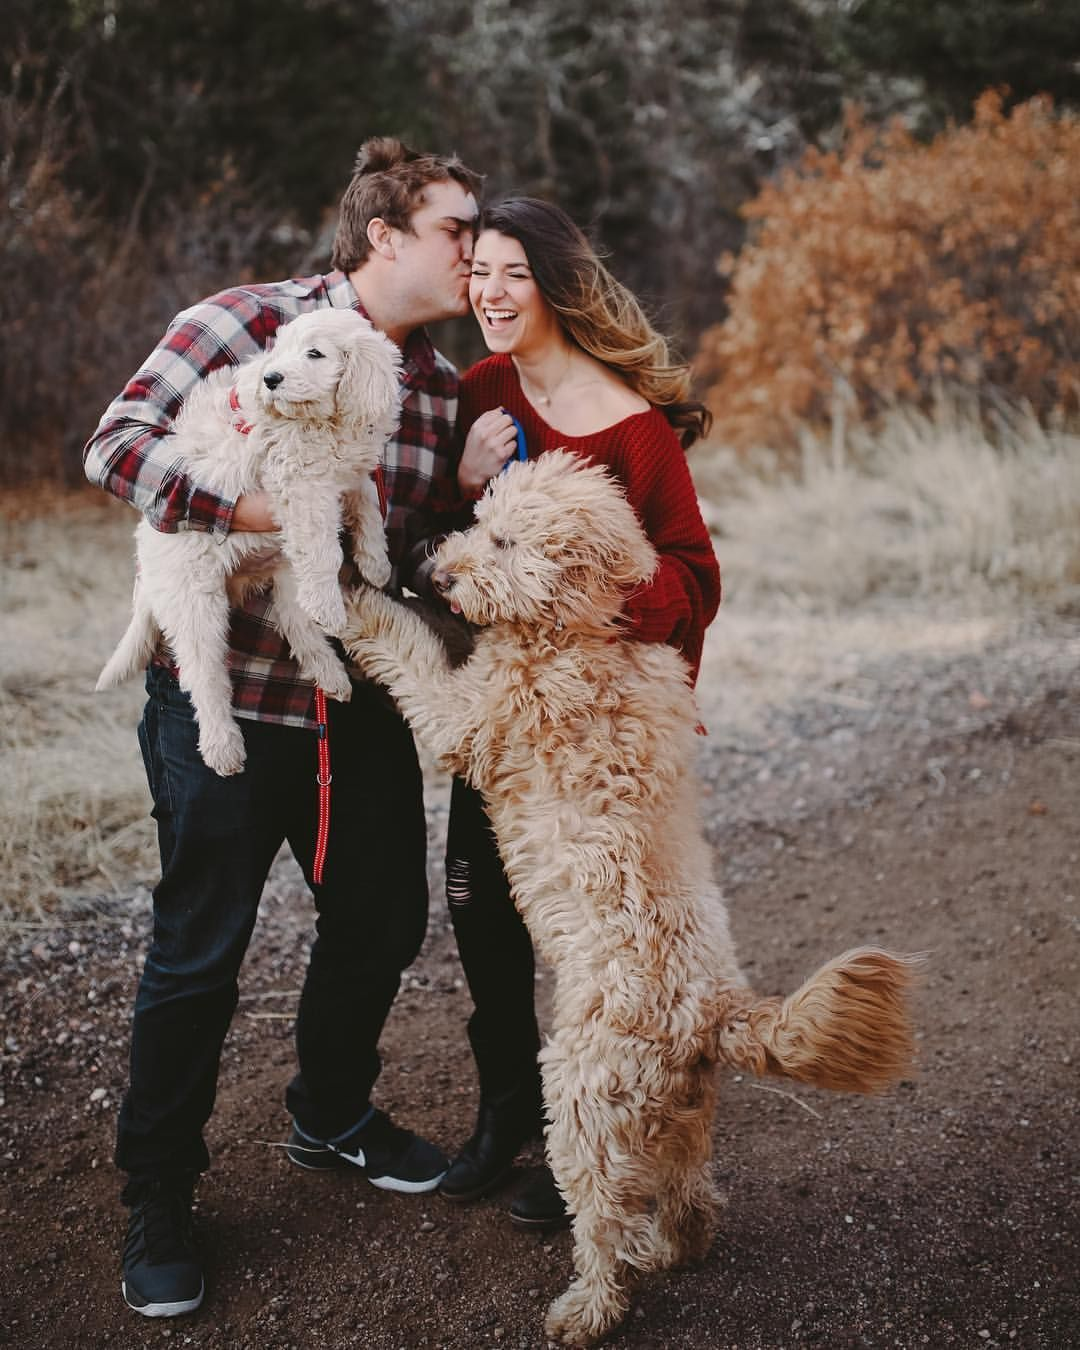 PS. If you have a goldendoodle, always bring them to your